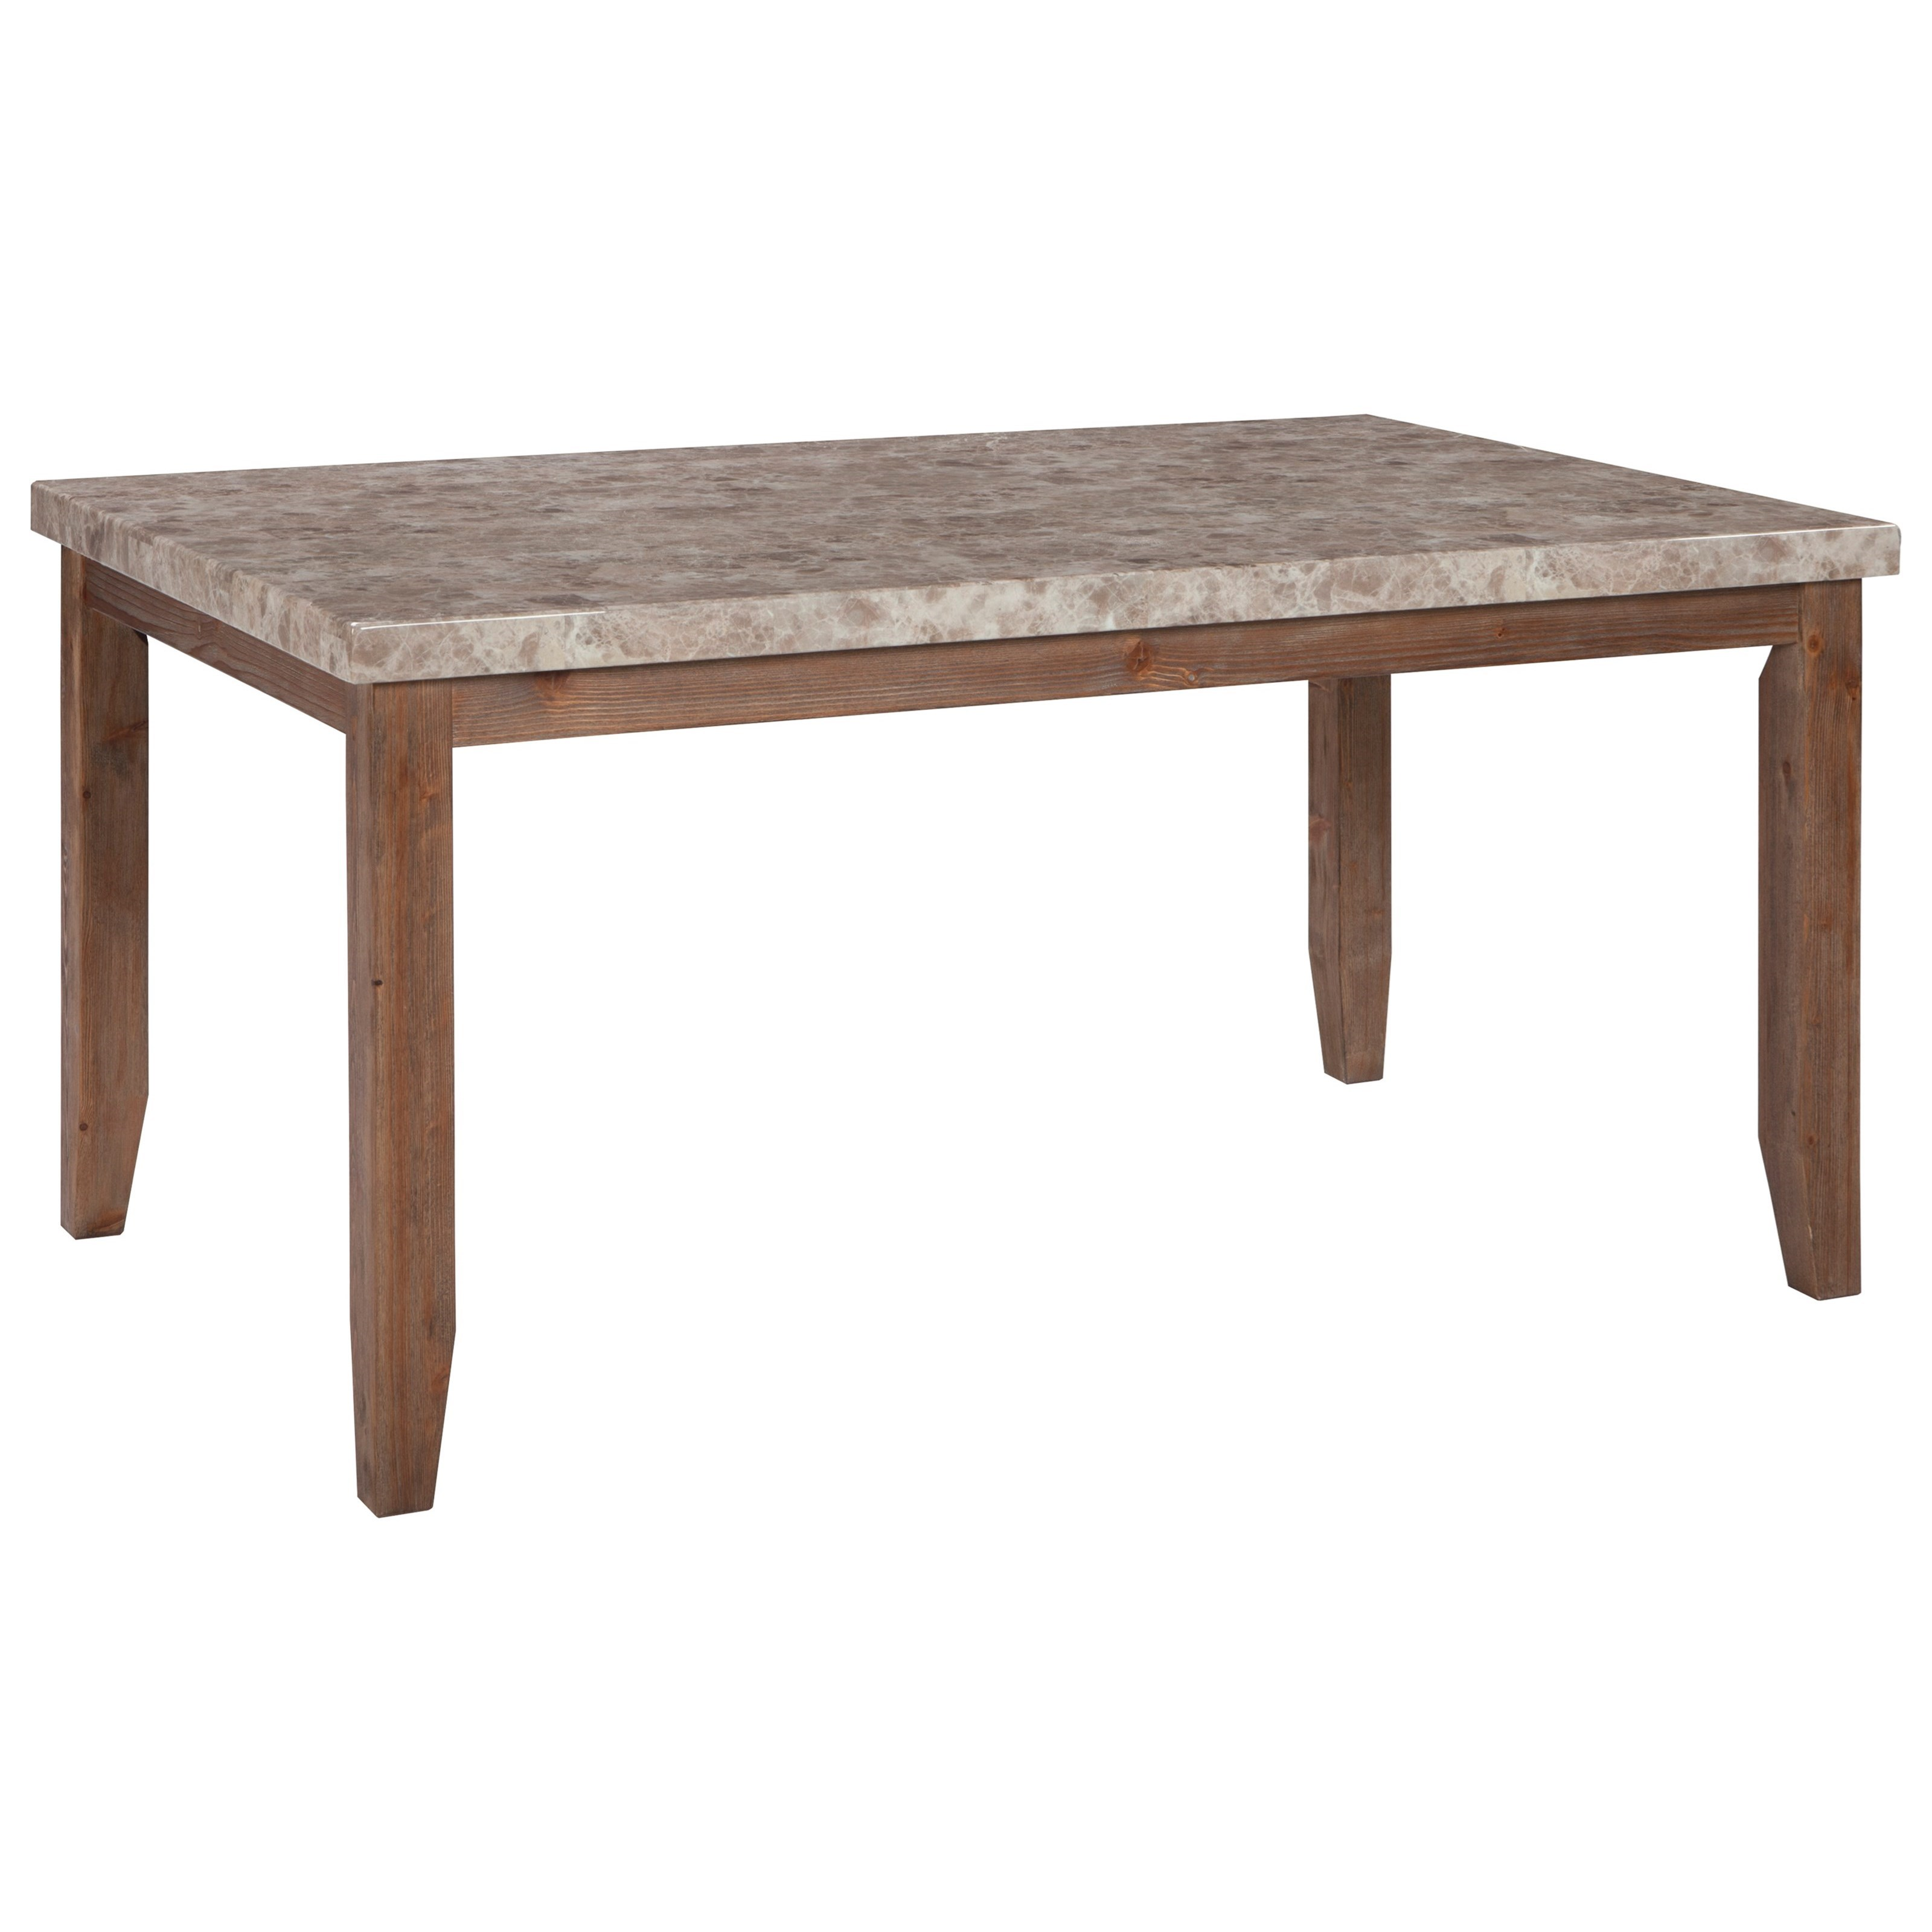 Signature Design by Ashley Narvilla Rectangular Dining Room Table - Item Number: D559-25